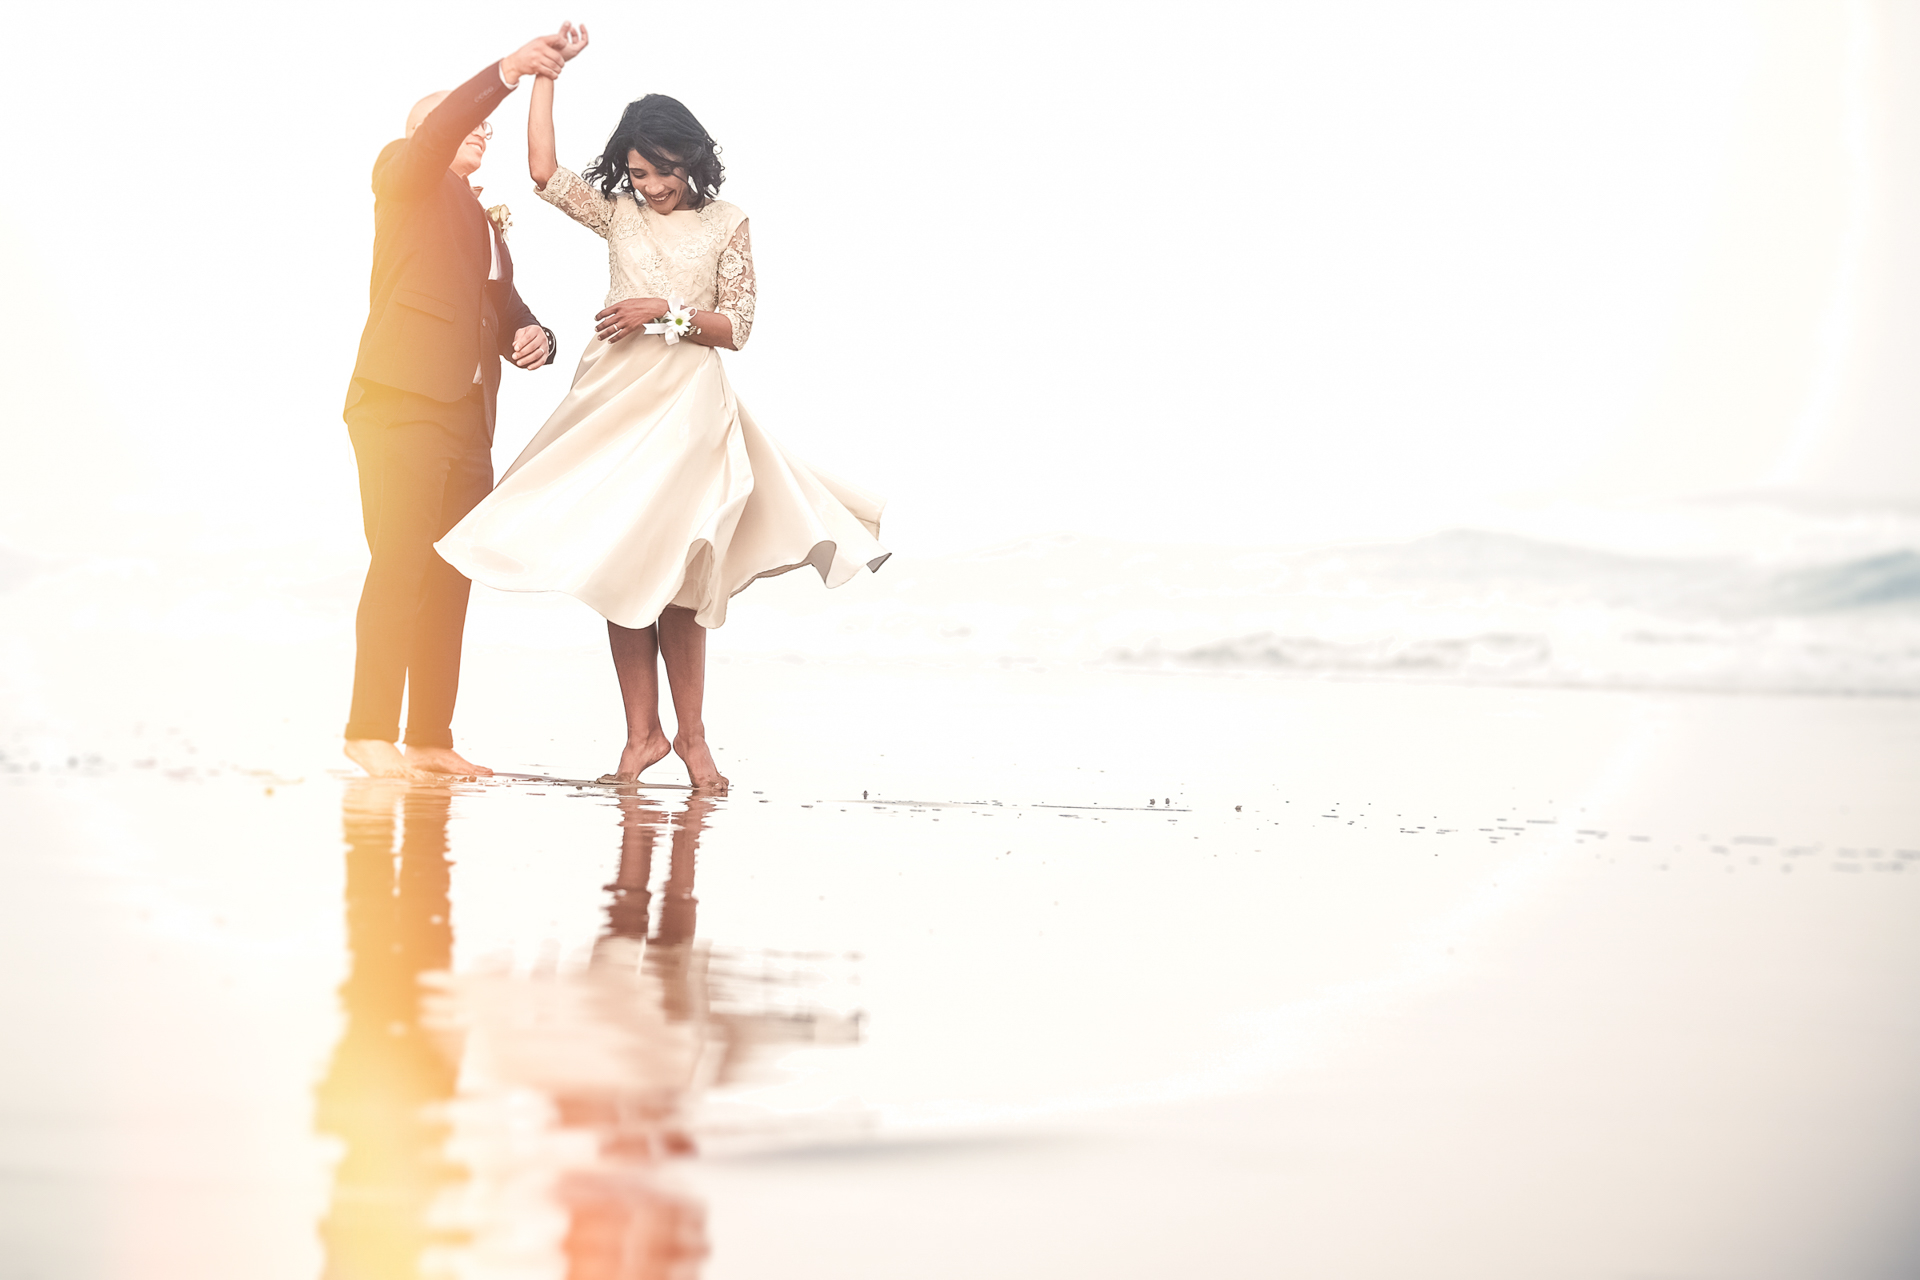 Wilderness, Garden Route, South Africa elopement - this was a spontaneous first dance the couple did on the beach during their portrait session and it captures the couple's personalities perfectly.